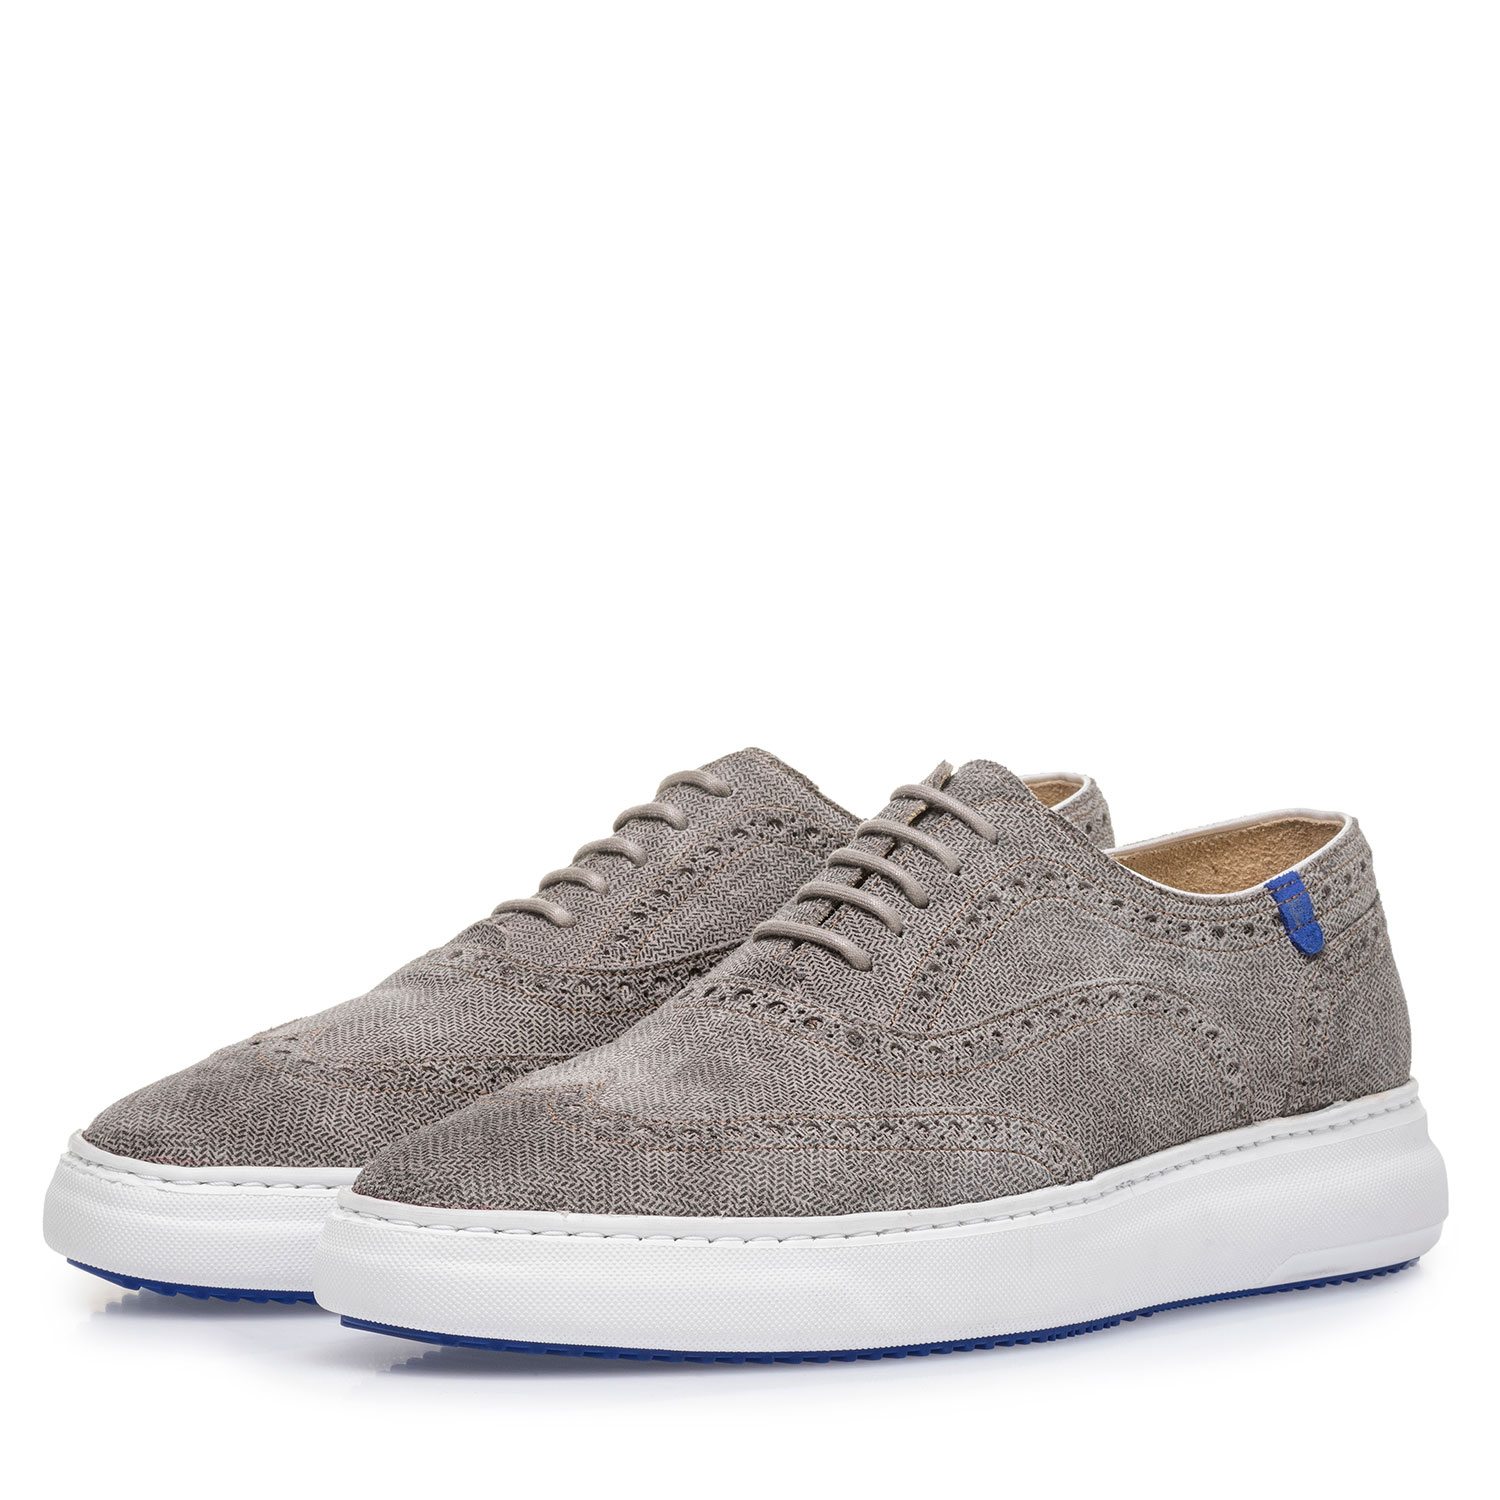 19400/09 - Light grey suede leather lace shoe with print